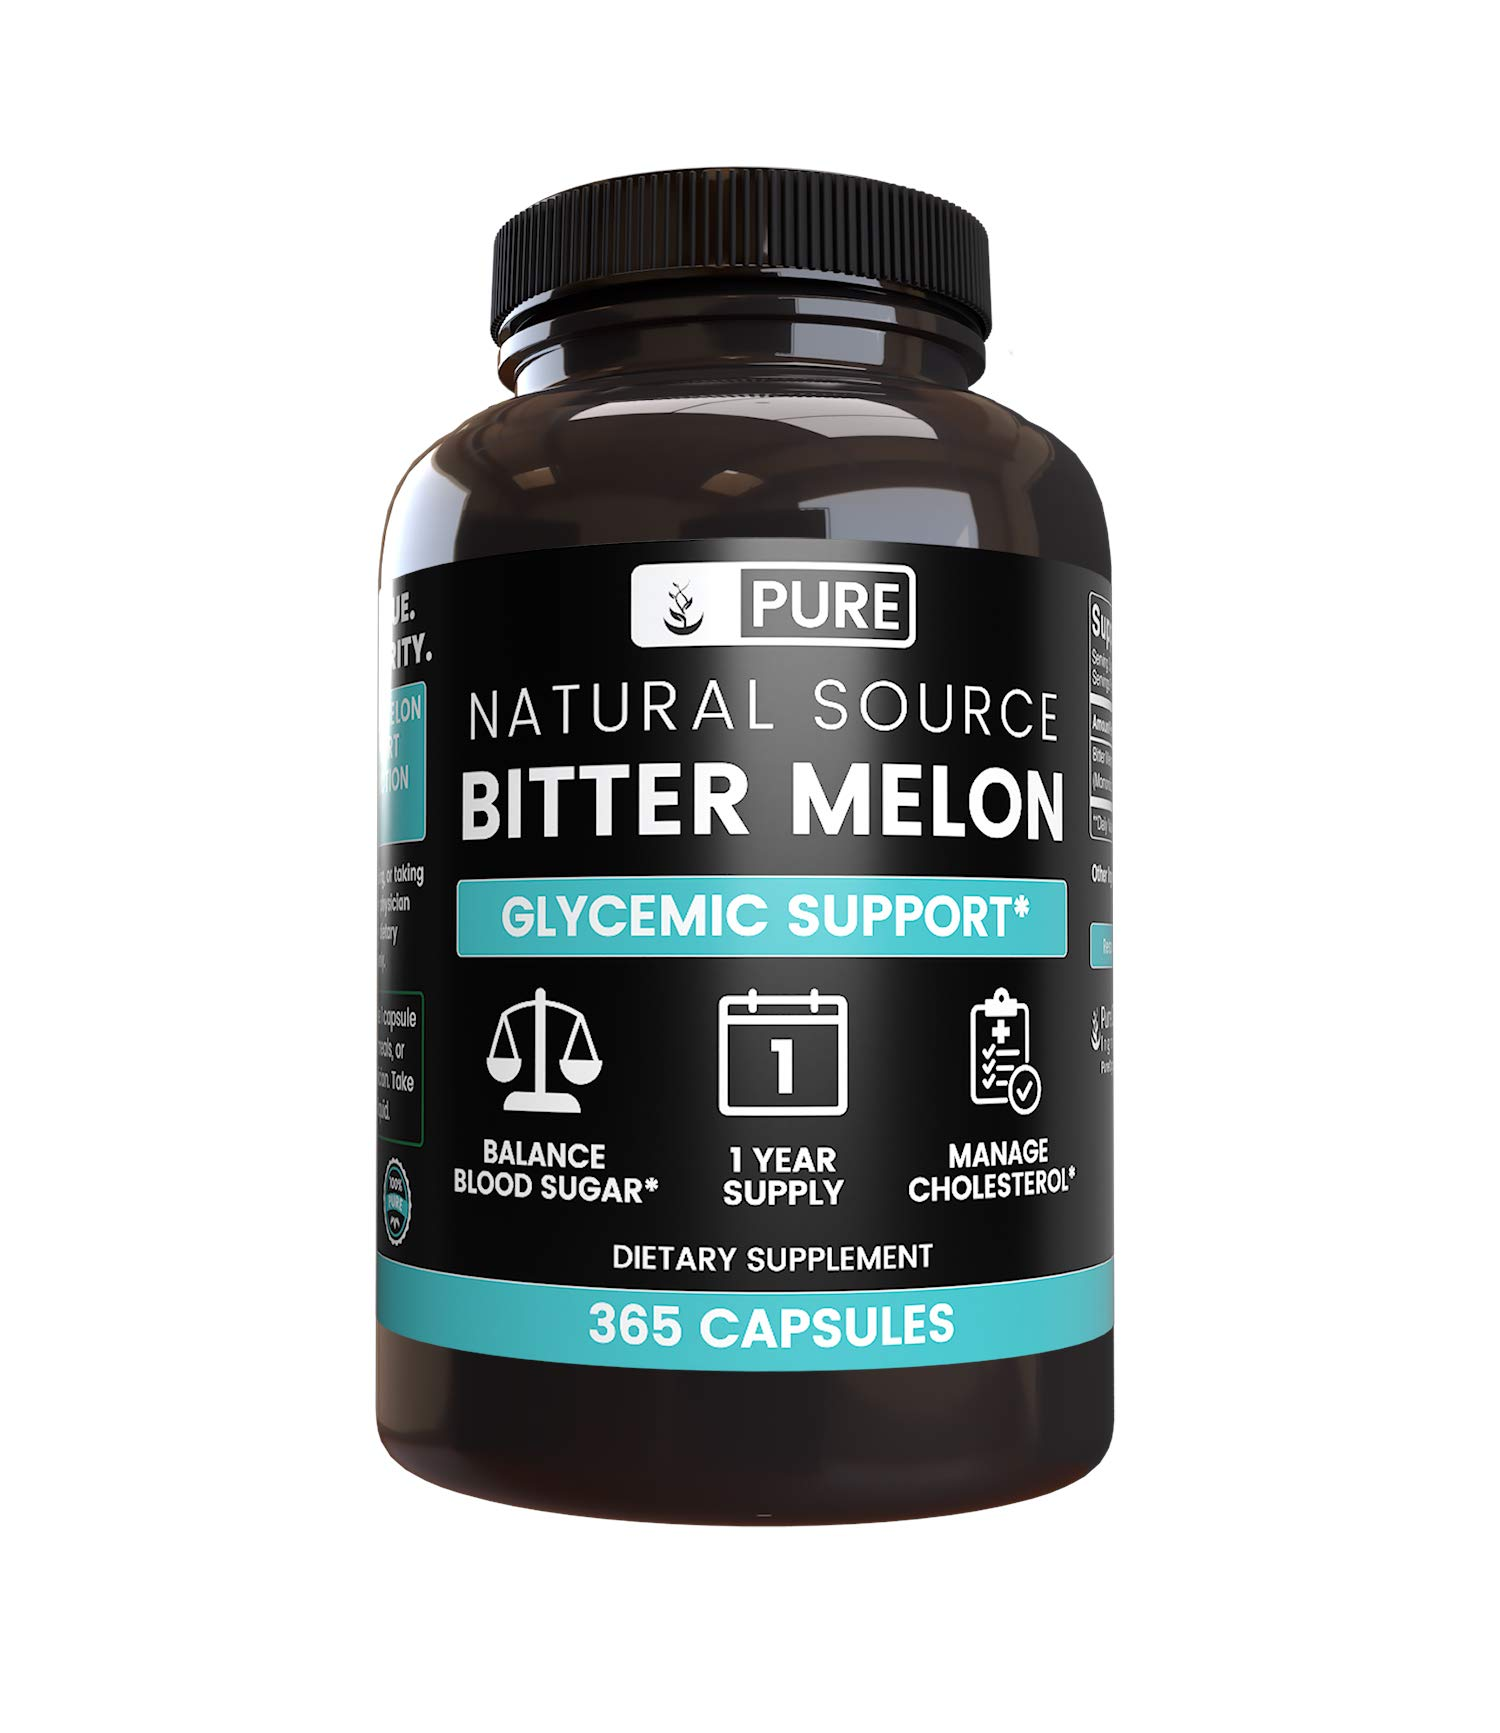 Natural Source Bitter Melon, 365 Capsules, 1 Year Supply, No Magnesium or Rice Filler, No Gluten, No Soy or Dairy, 415 mg per Serving of Undiluted Bitter Melon with No Additives